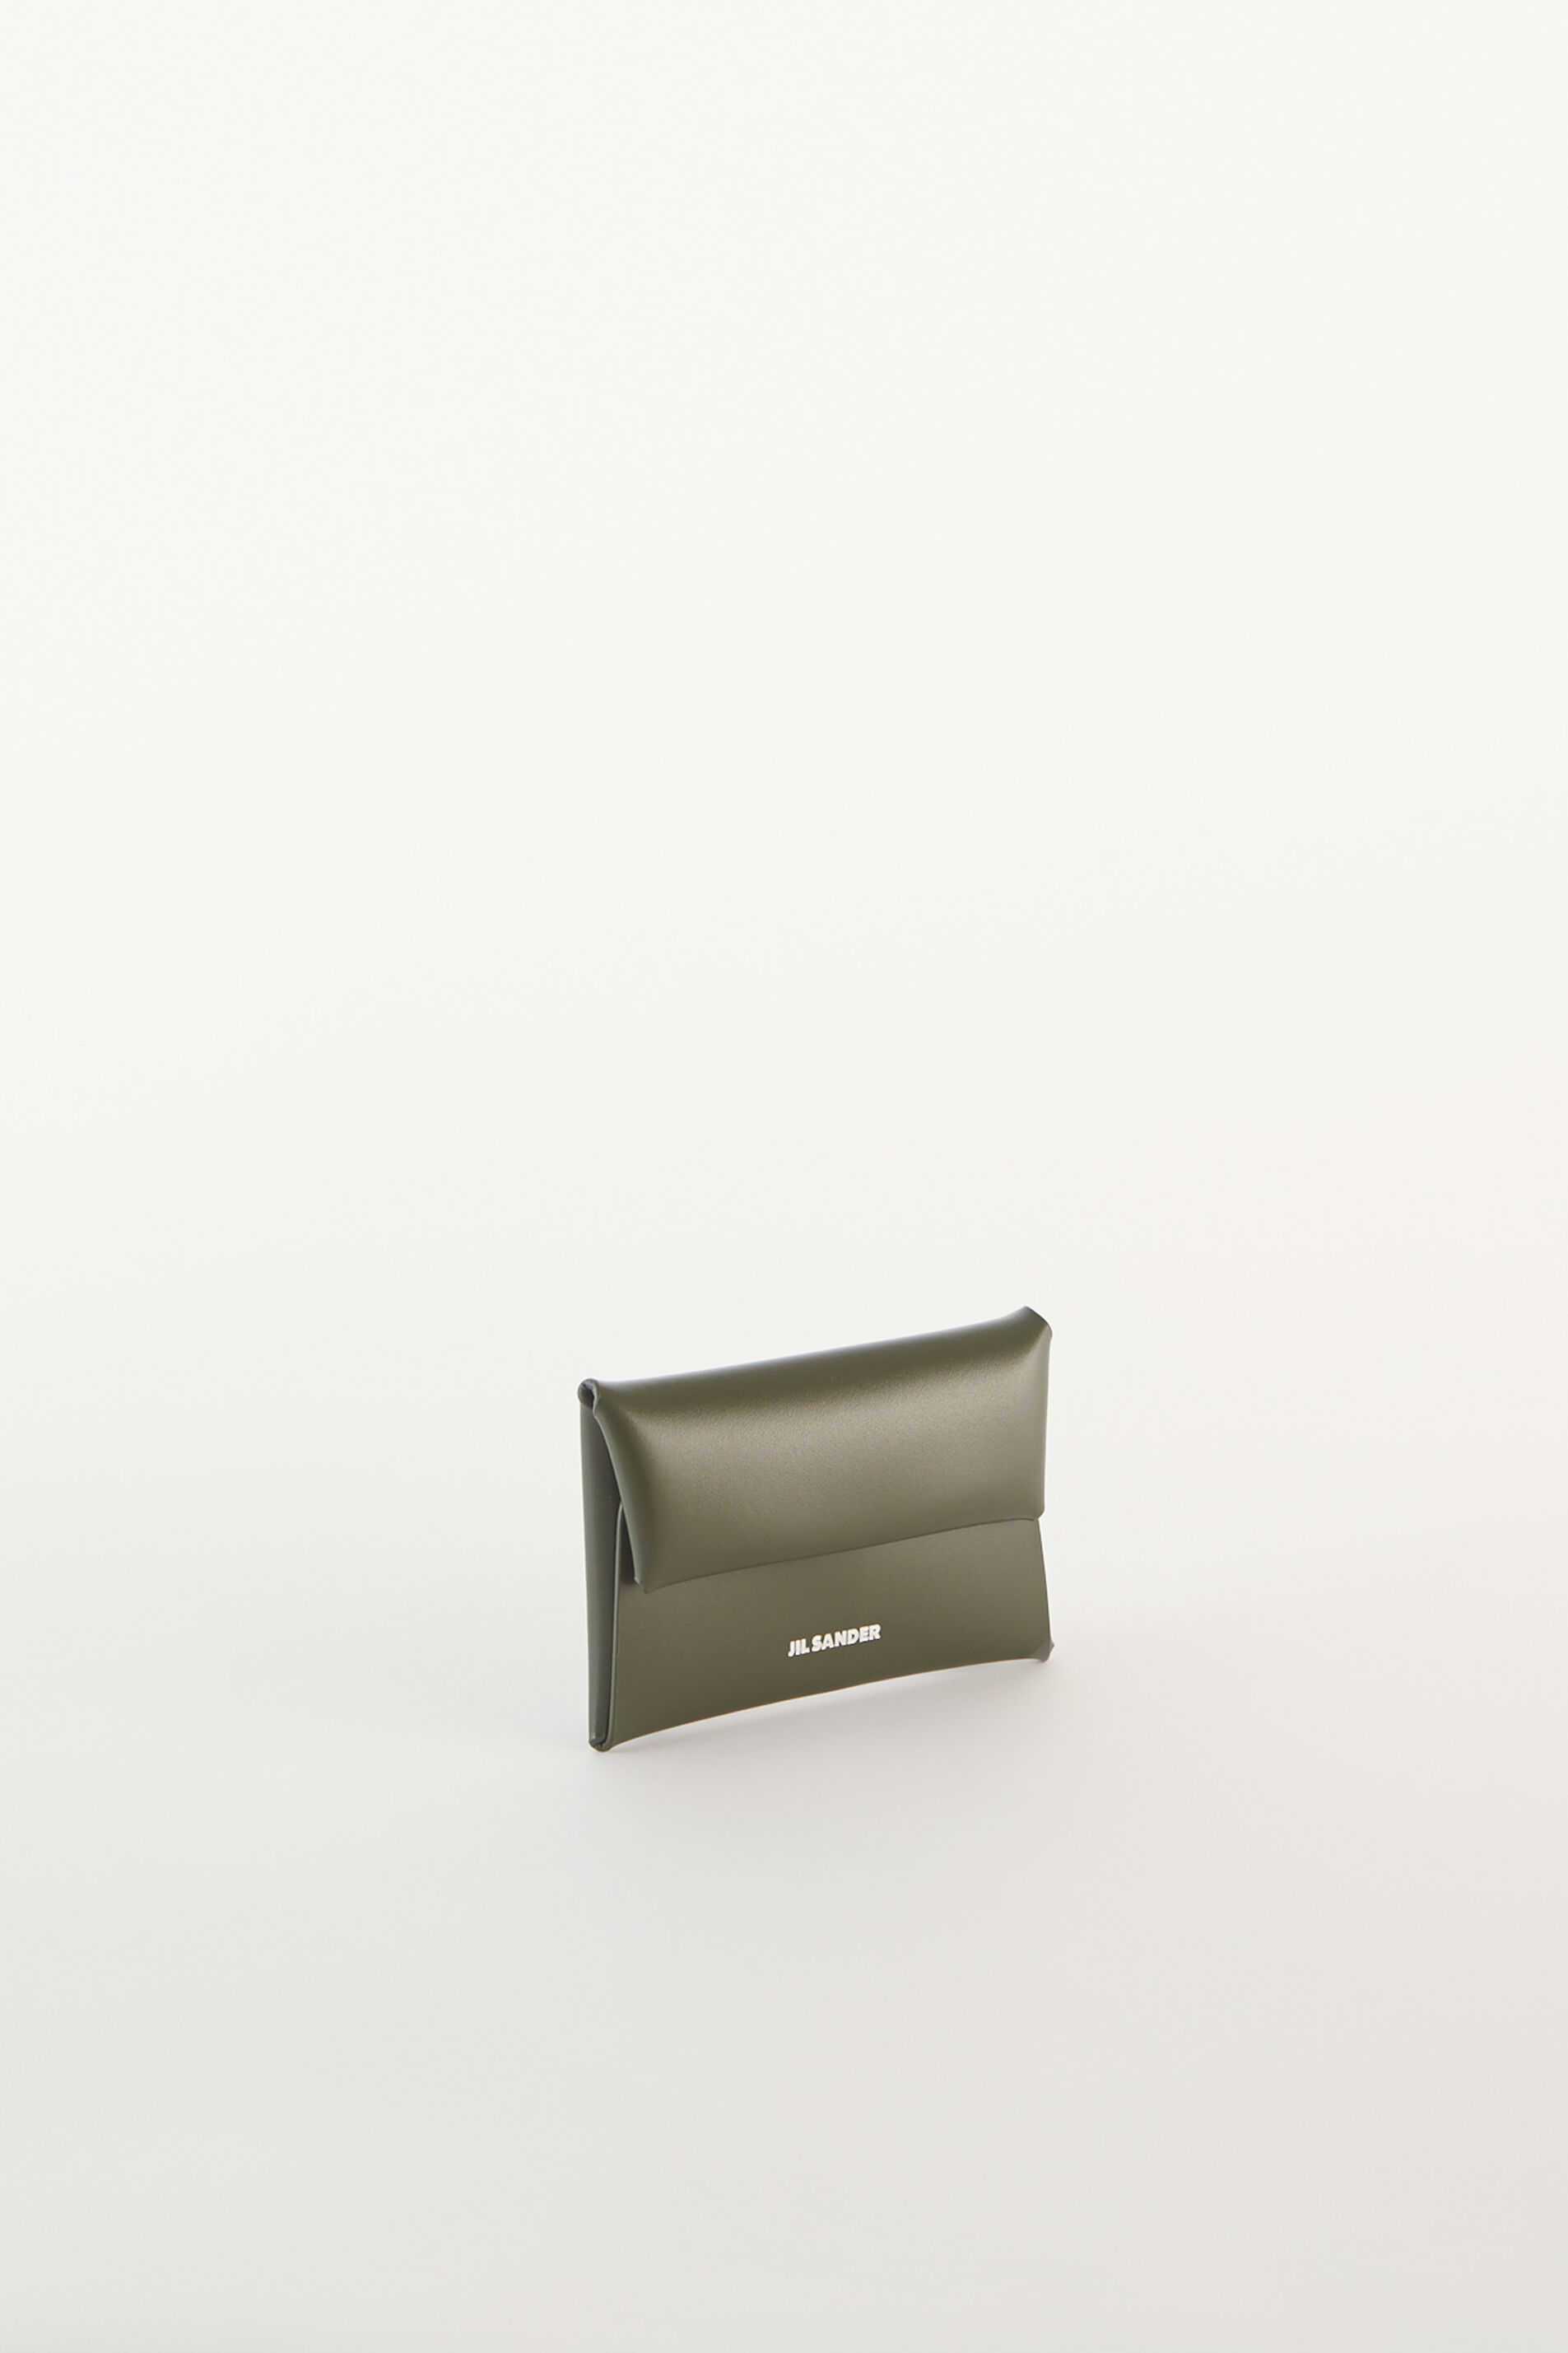 Coin Purse, green, large